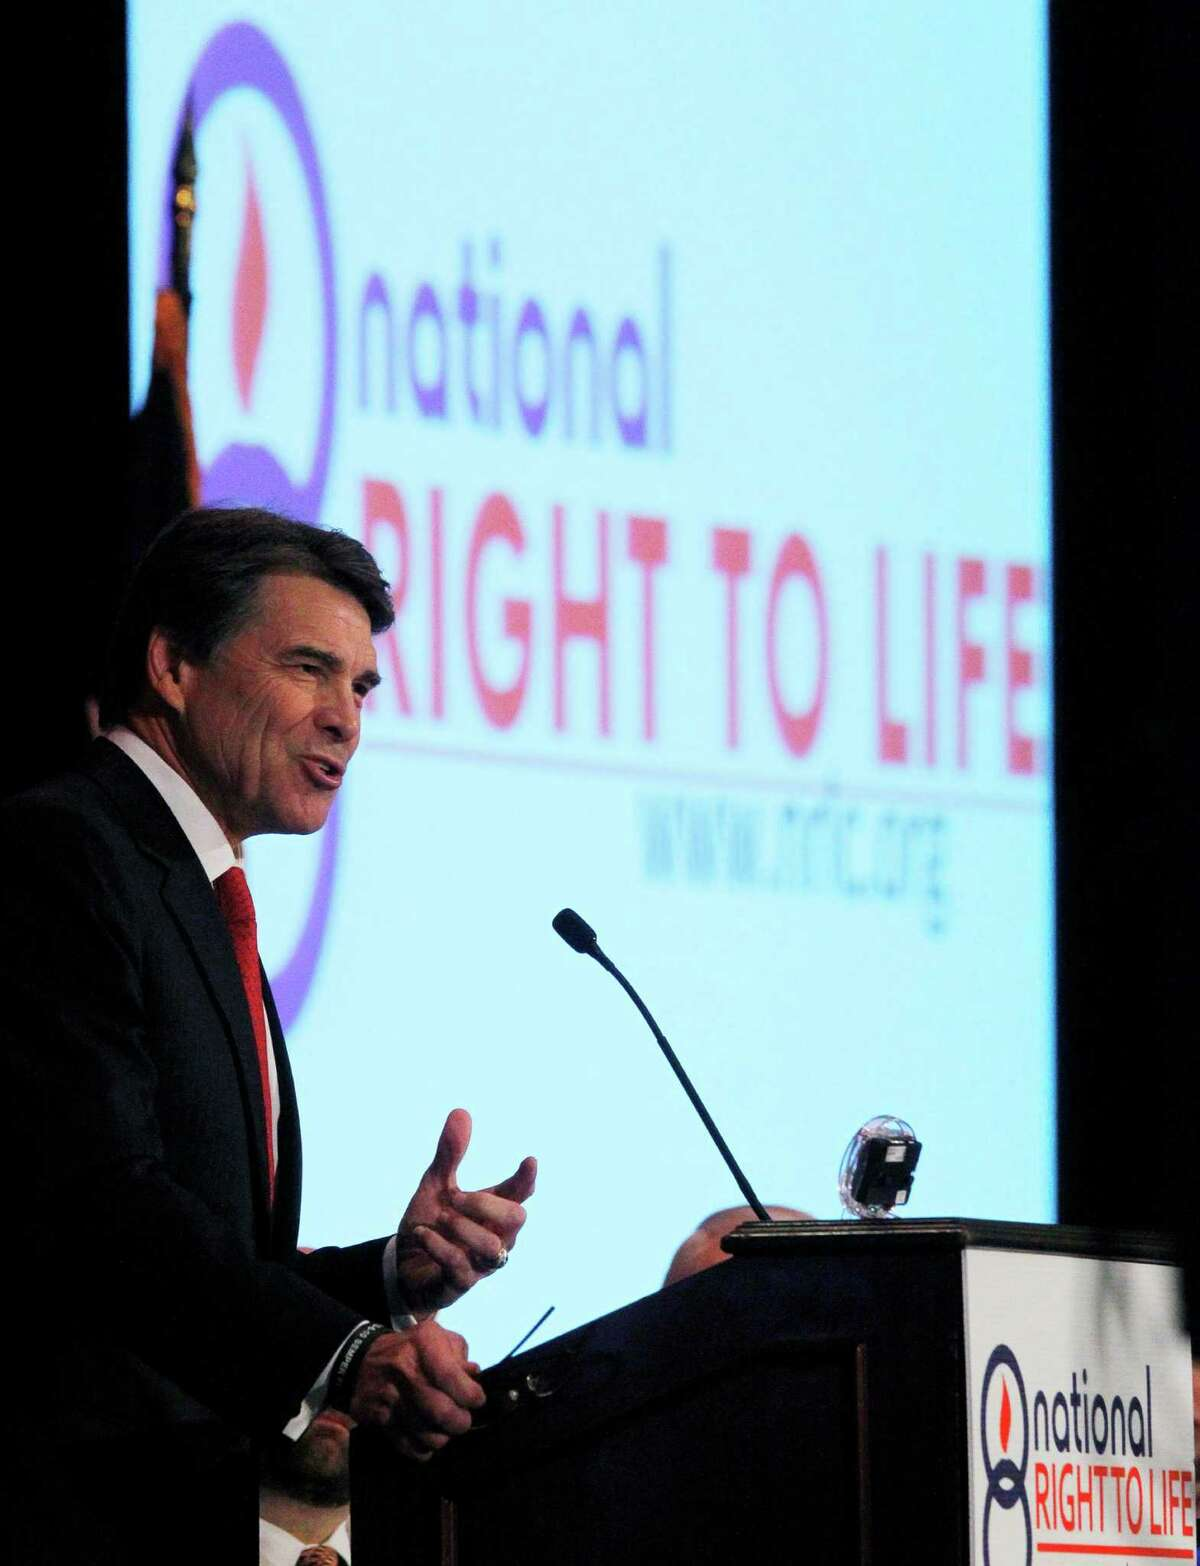 Gov. Rick Perry speaks during the general session of the 43rd annual National Right to Life Convention at the Hyatt Regency DFW International Airport, Thursday, June 27, 2013. (Rodger Mallison/Fort Worth Star-Telegram/MCT)